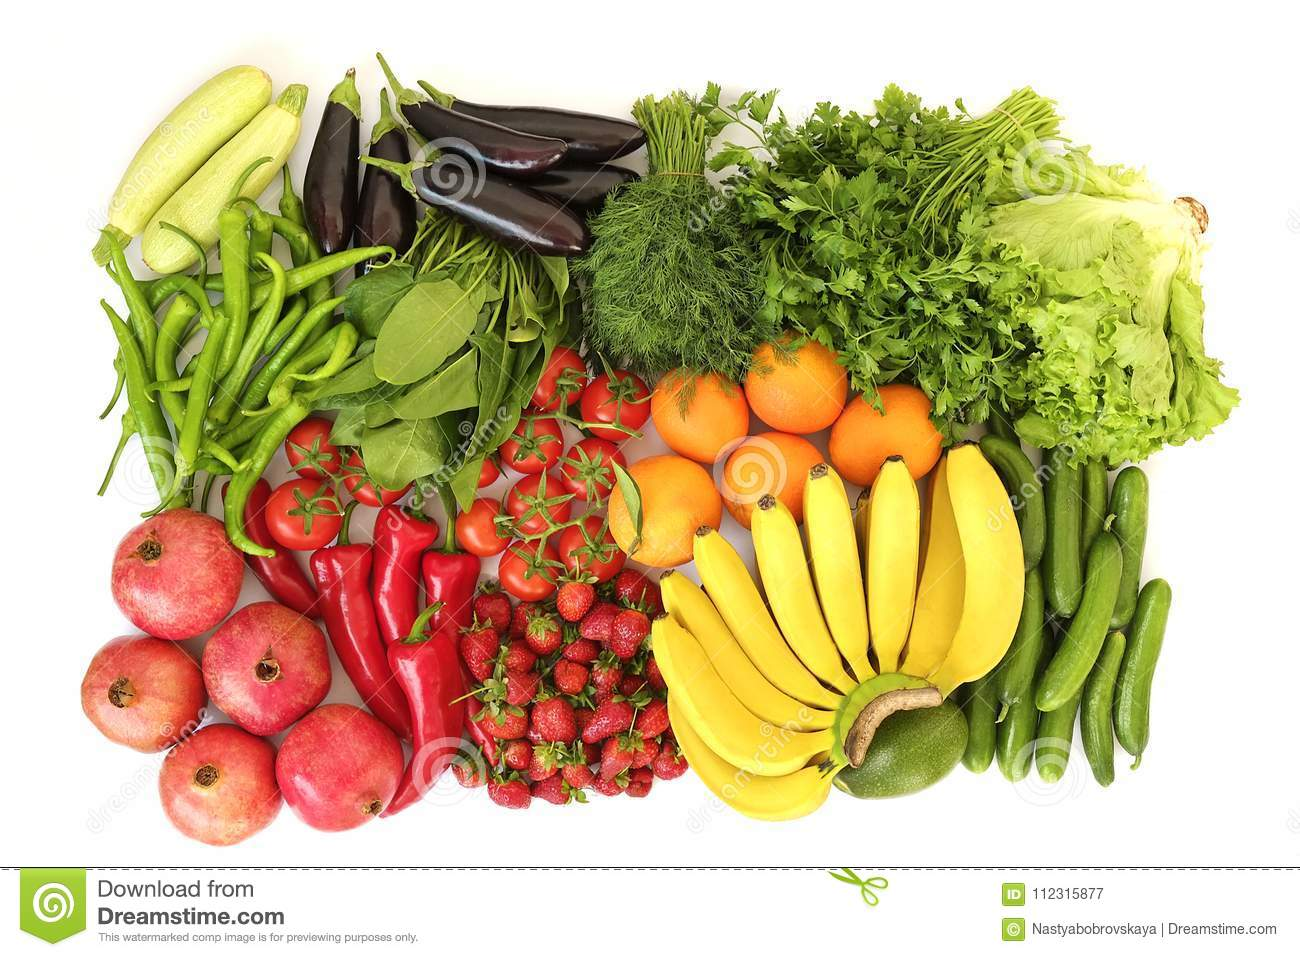 Beautiful flat lay composition with different kinds of mixed fresh fruits, vegetables and herbs assortment on white table top back